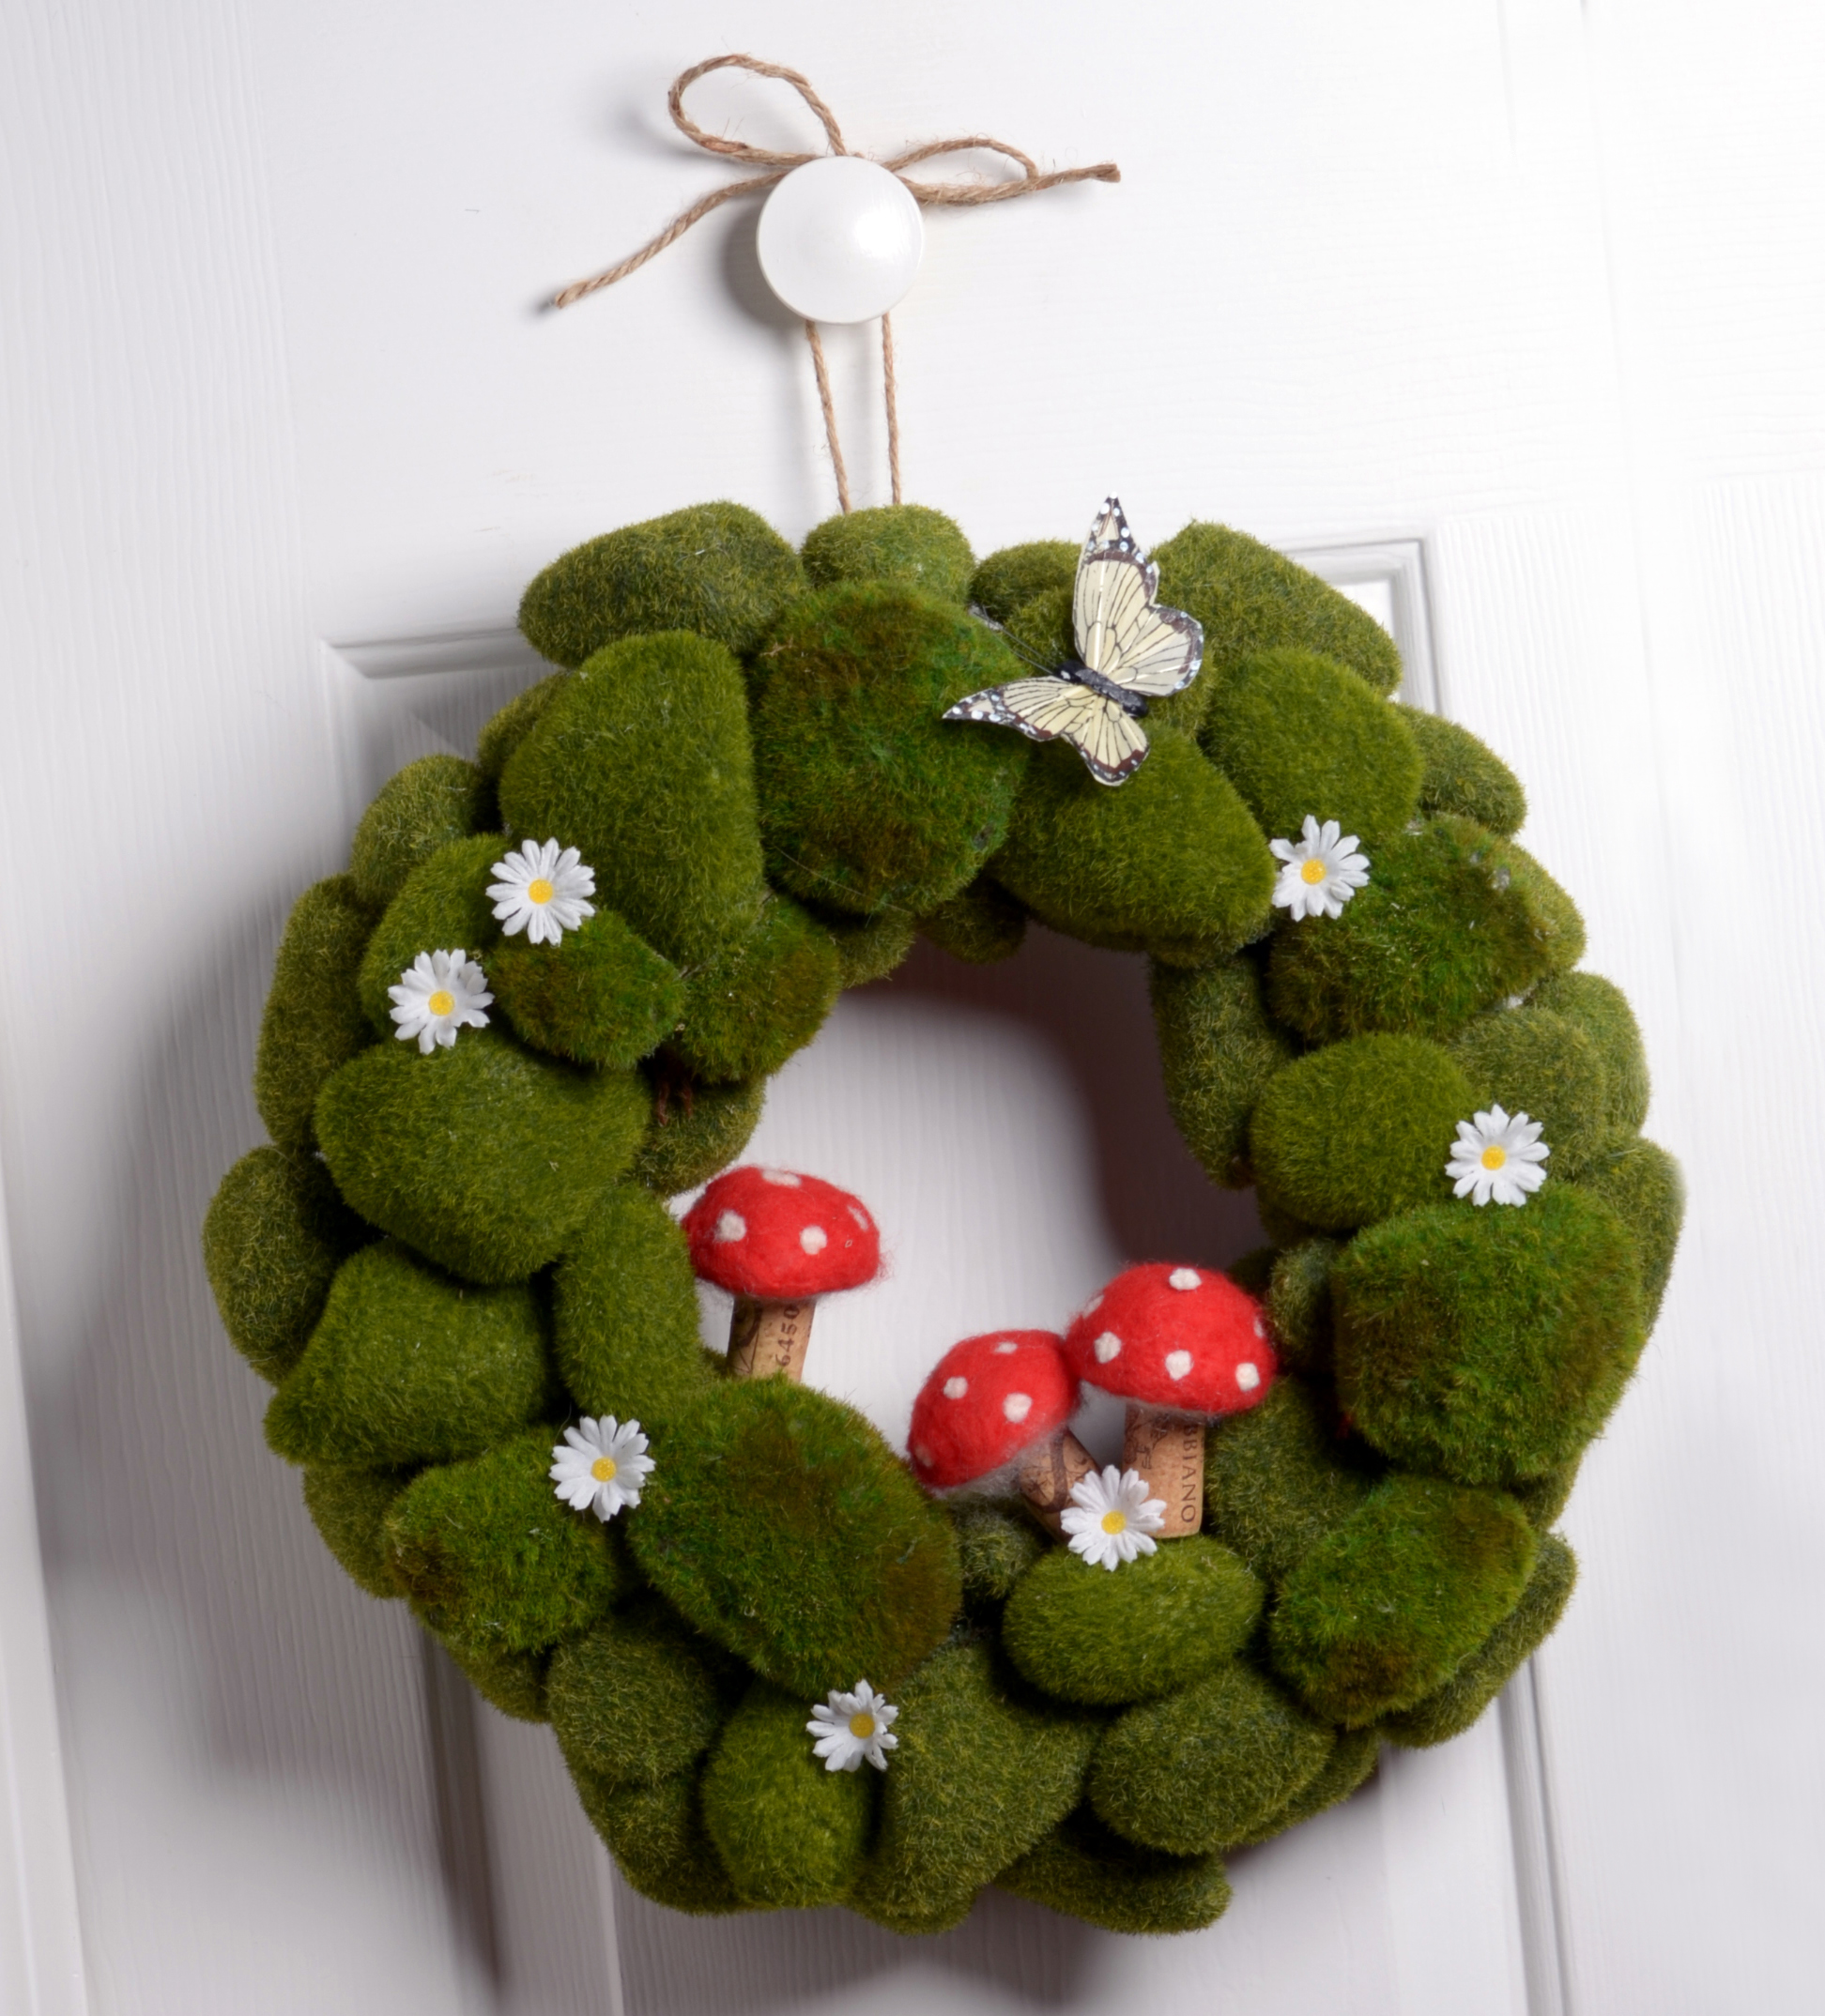 Backyard Ideas For Spring Decorating 6 Tips To Make: Green As Spring DIY Wreath: National Craft Month Project